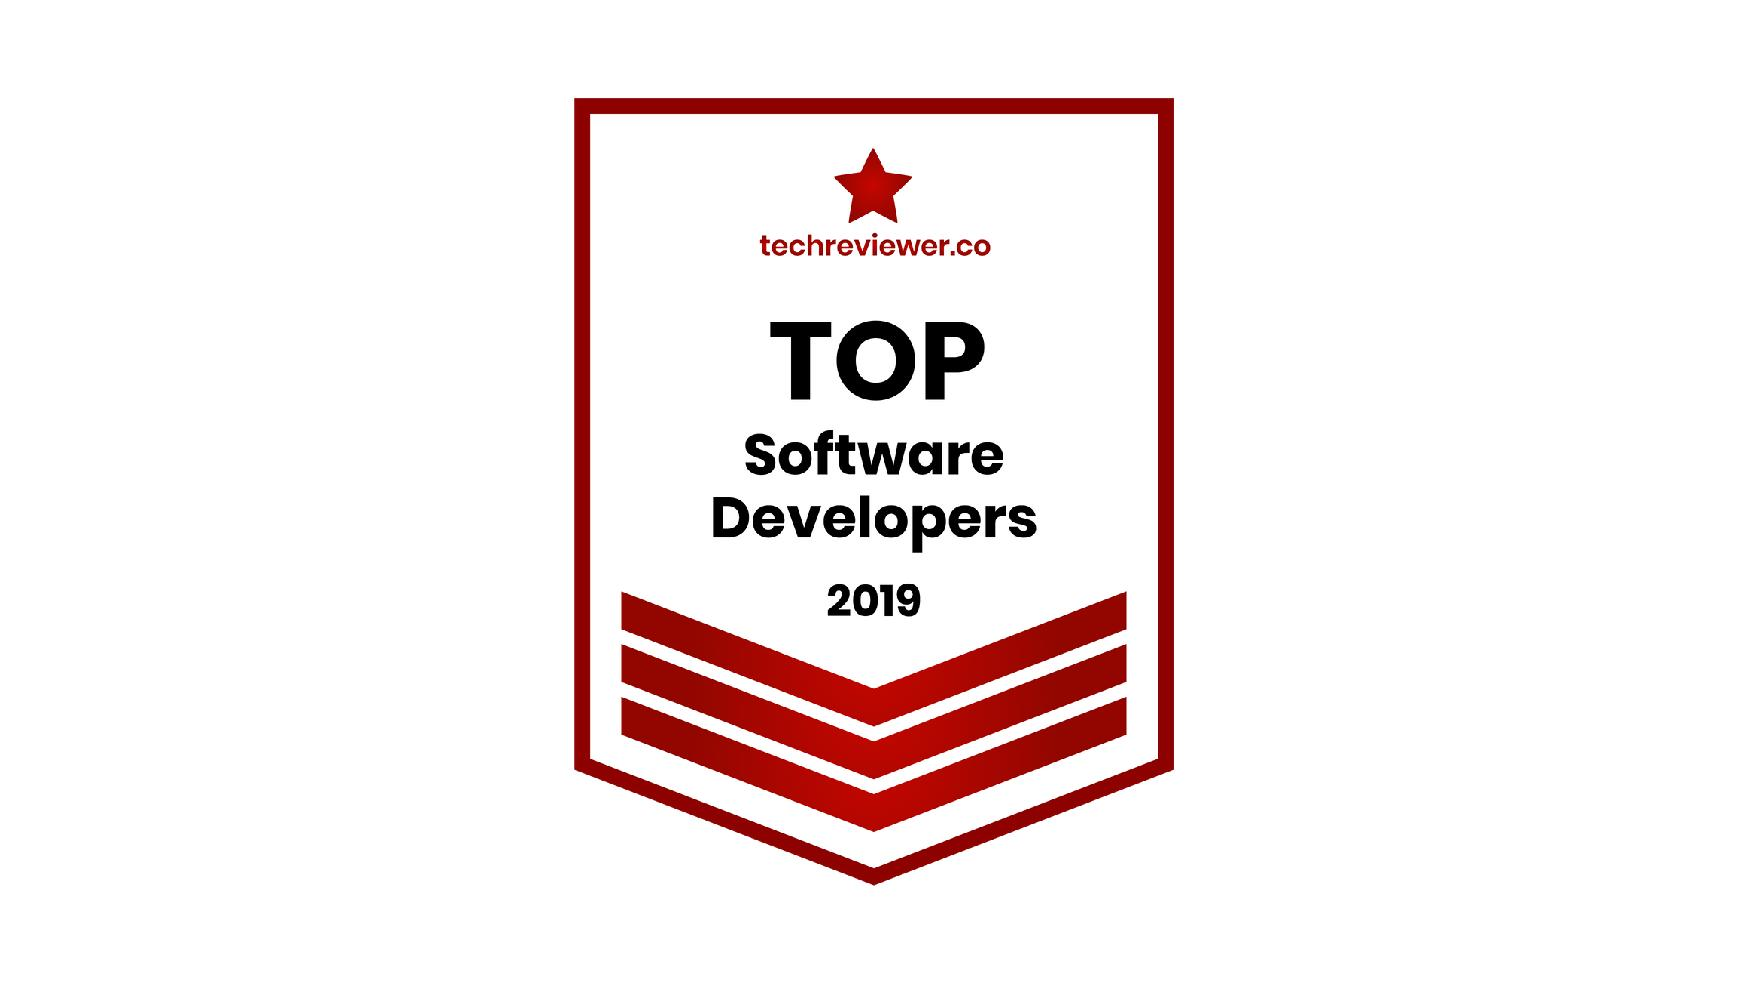 inVeritaSoft is recognized by TechReviewer as a Top Software Development company in 2019-page-001